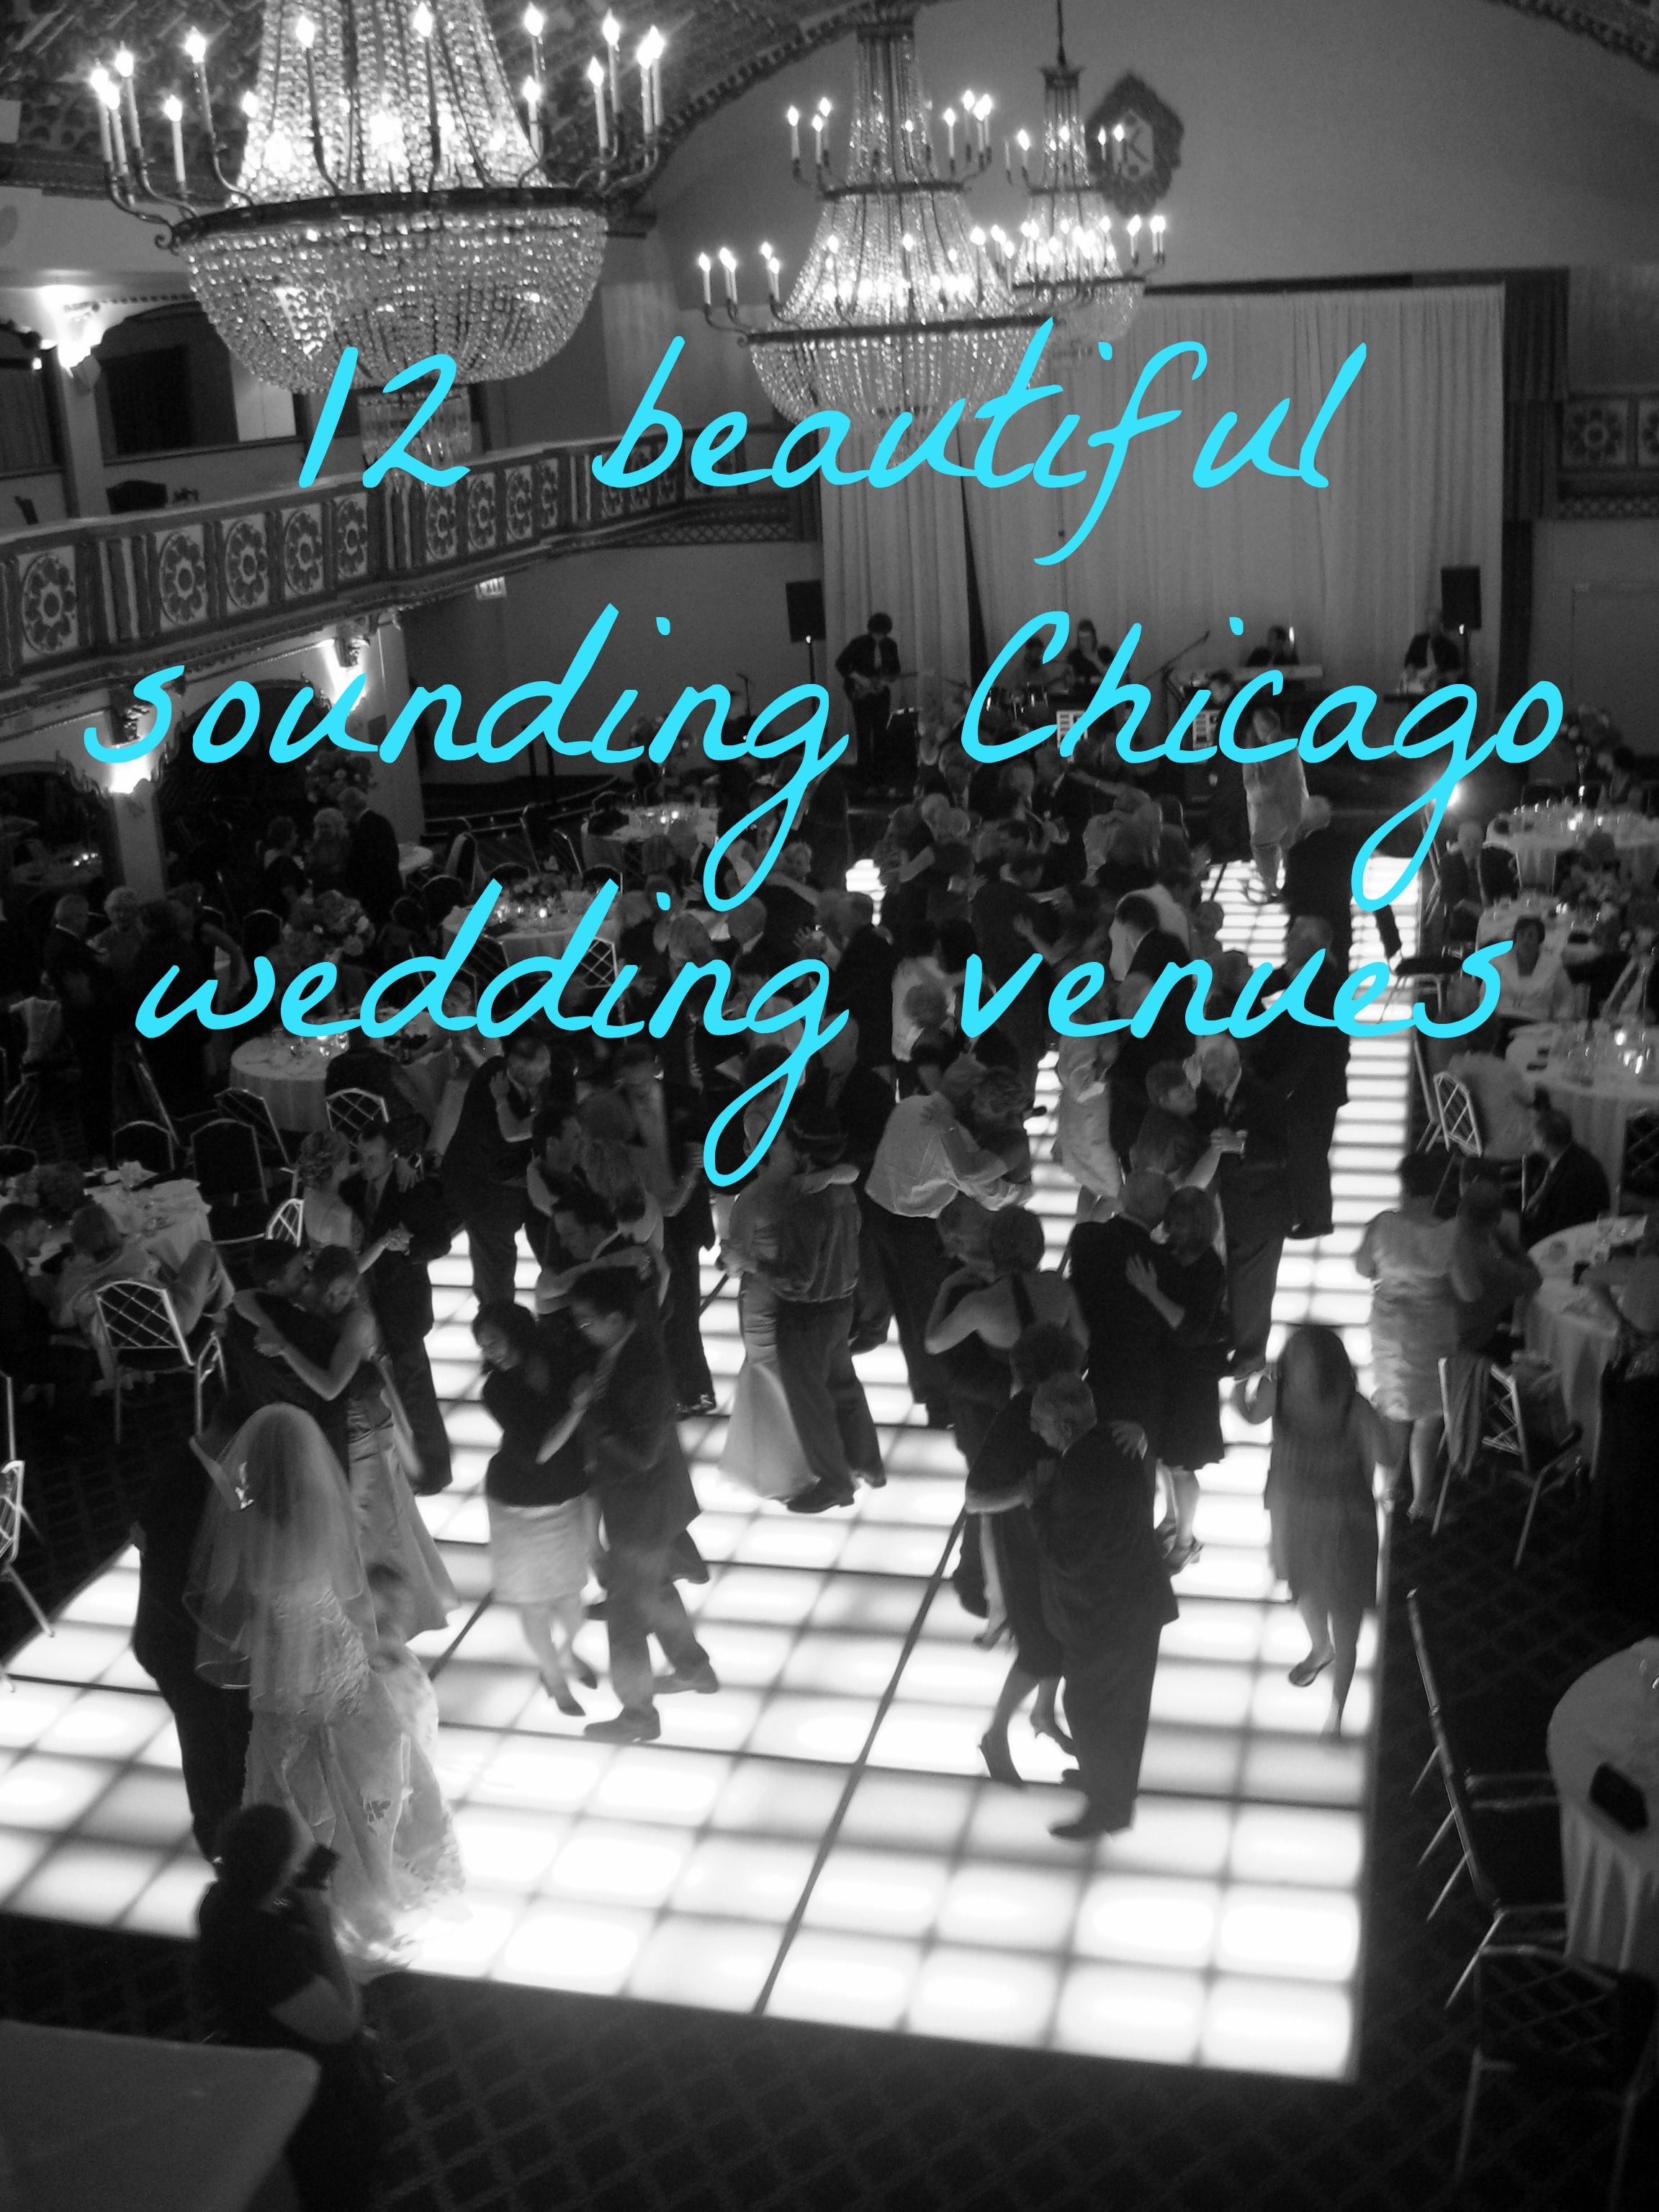 Northwest Suburbs Chicago Map%0A Oak Park Conservatory Weddings   Get Prices for Chicago Suburbs Wedding  Venues in Oak Park  IL   Let u    s Plan a Wedding    Pinterest   Wedding  venues  Wedding